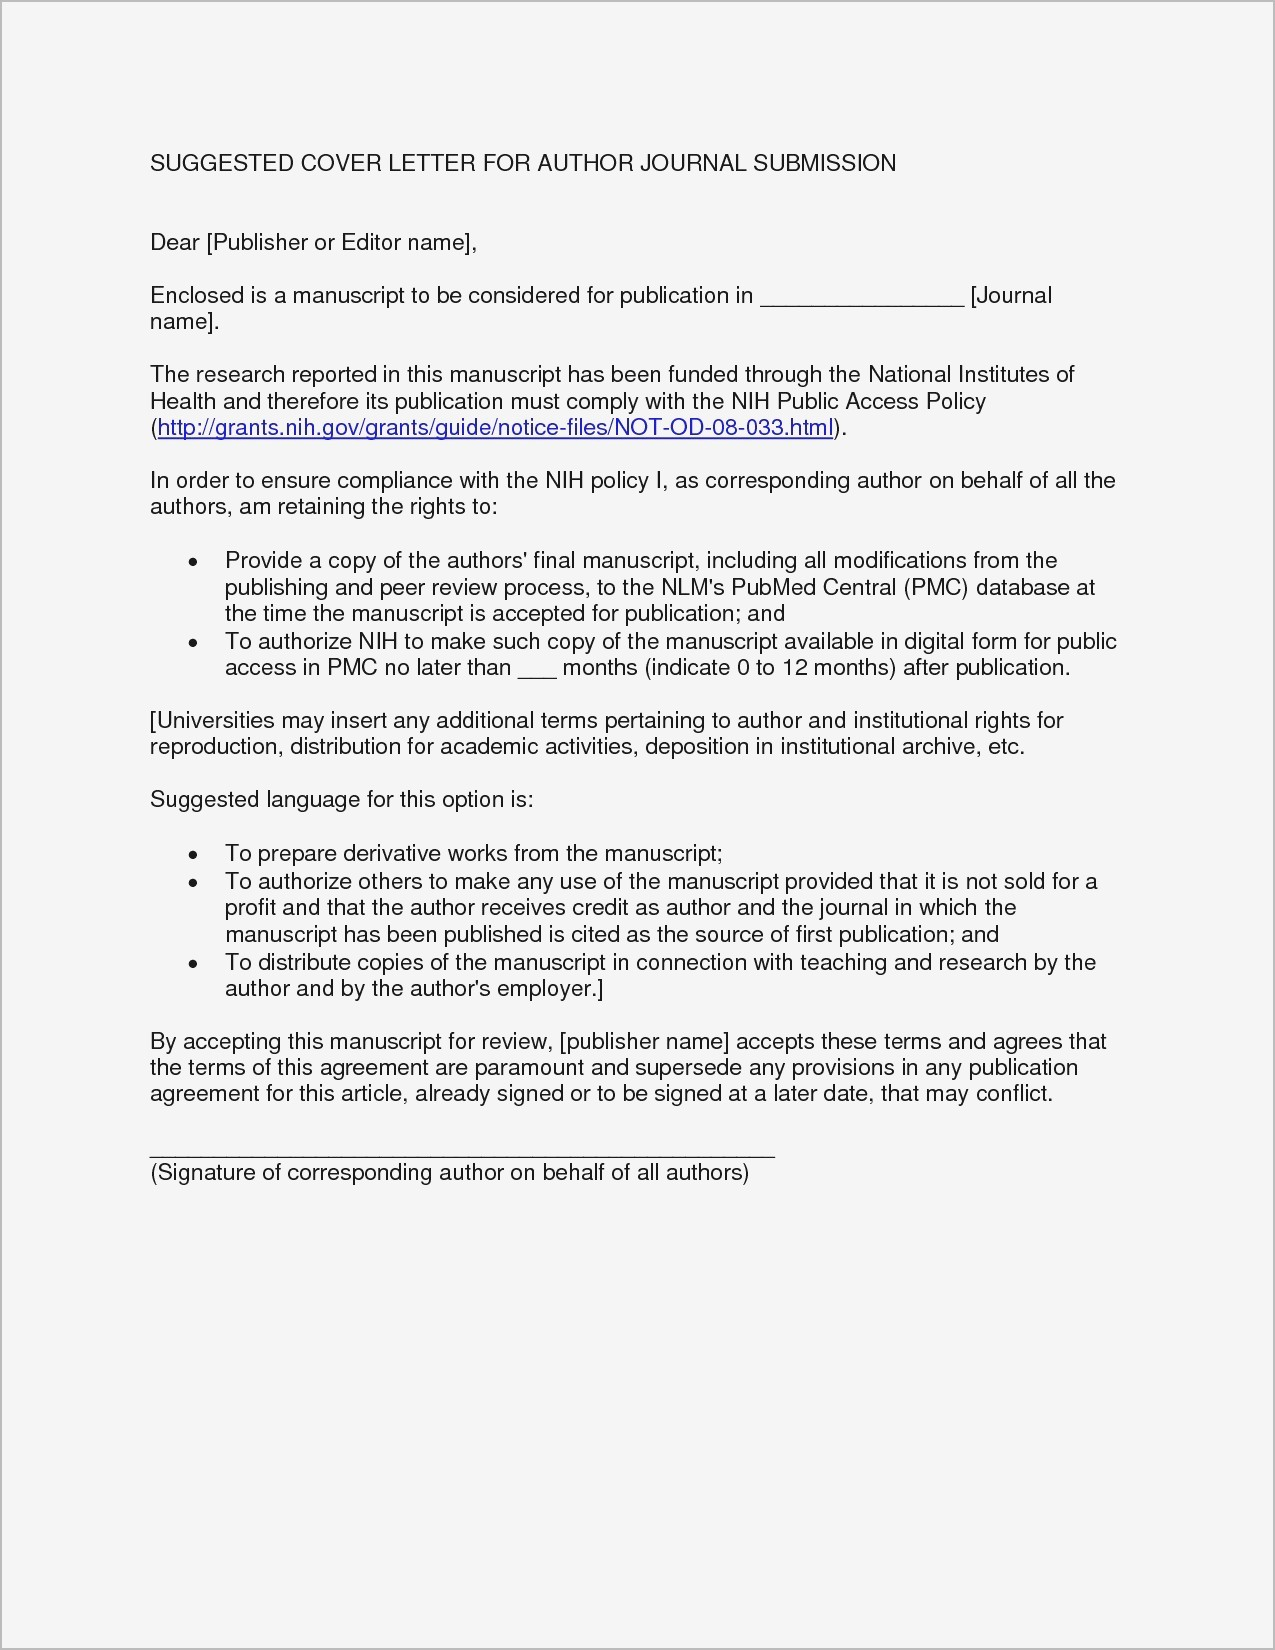 Letter to the Editor Template - Writing Business Requirements Template Best Fax Cover Letter